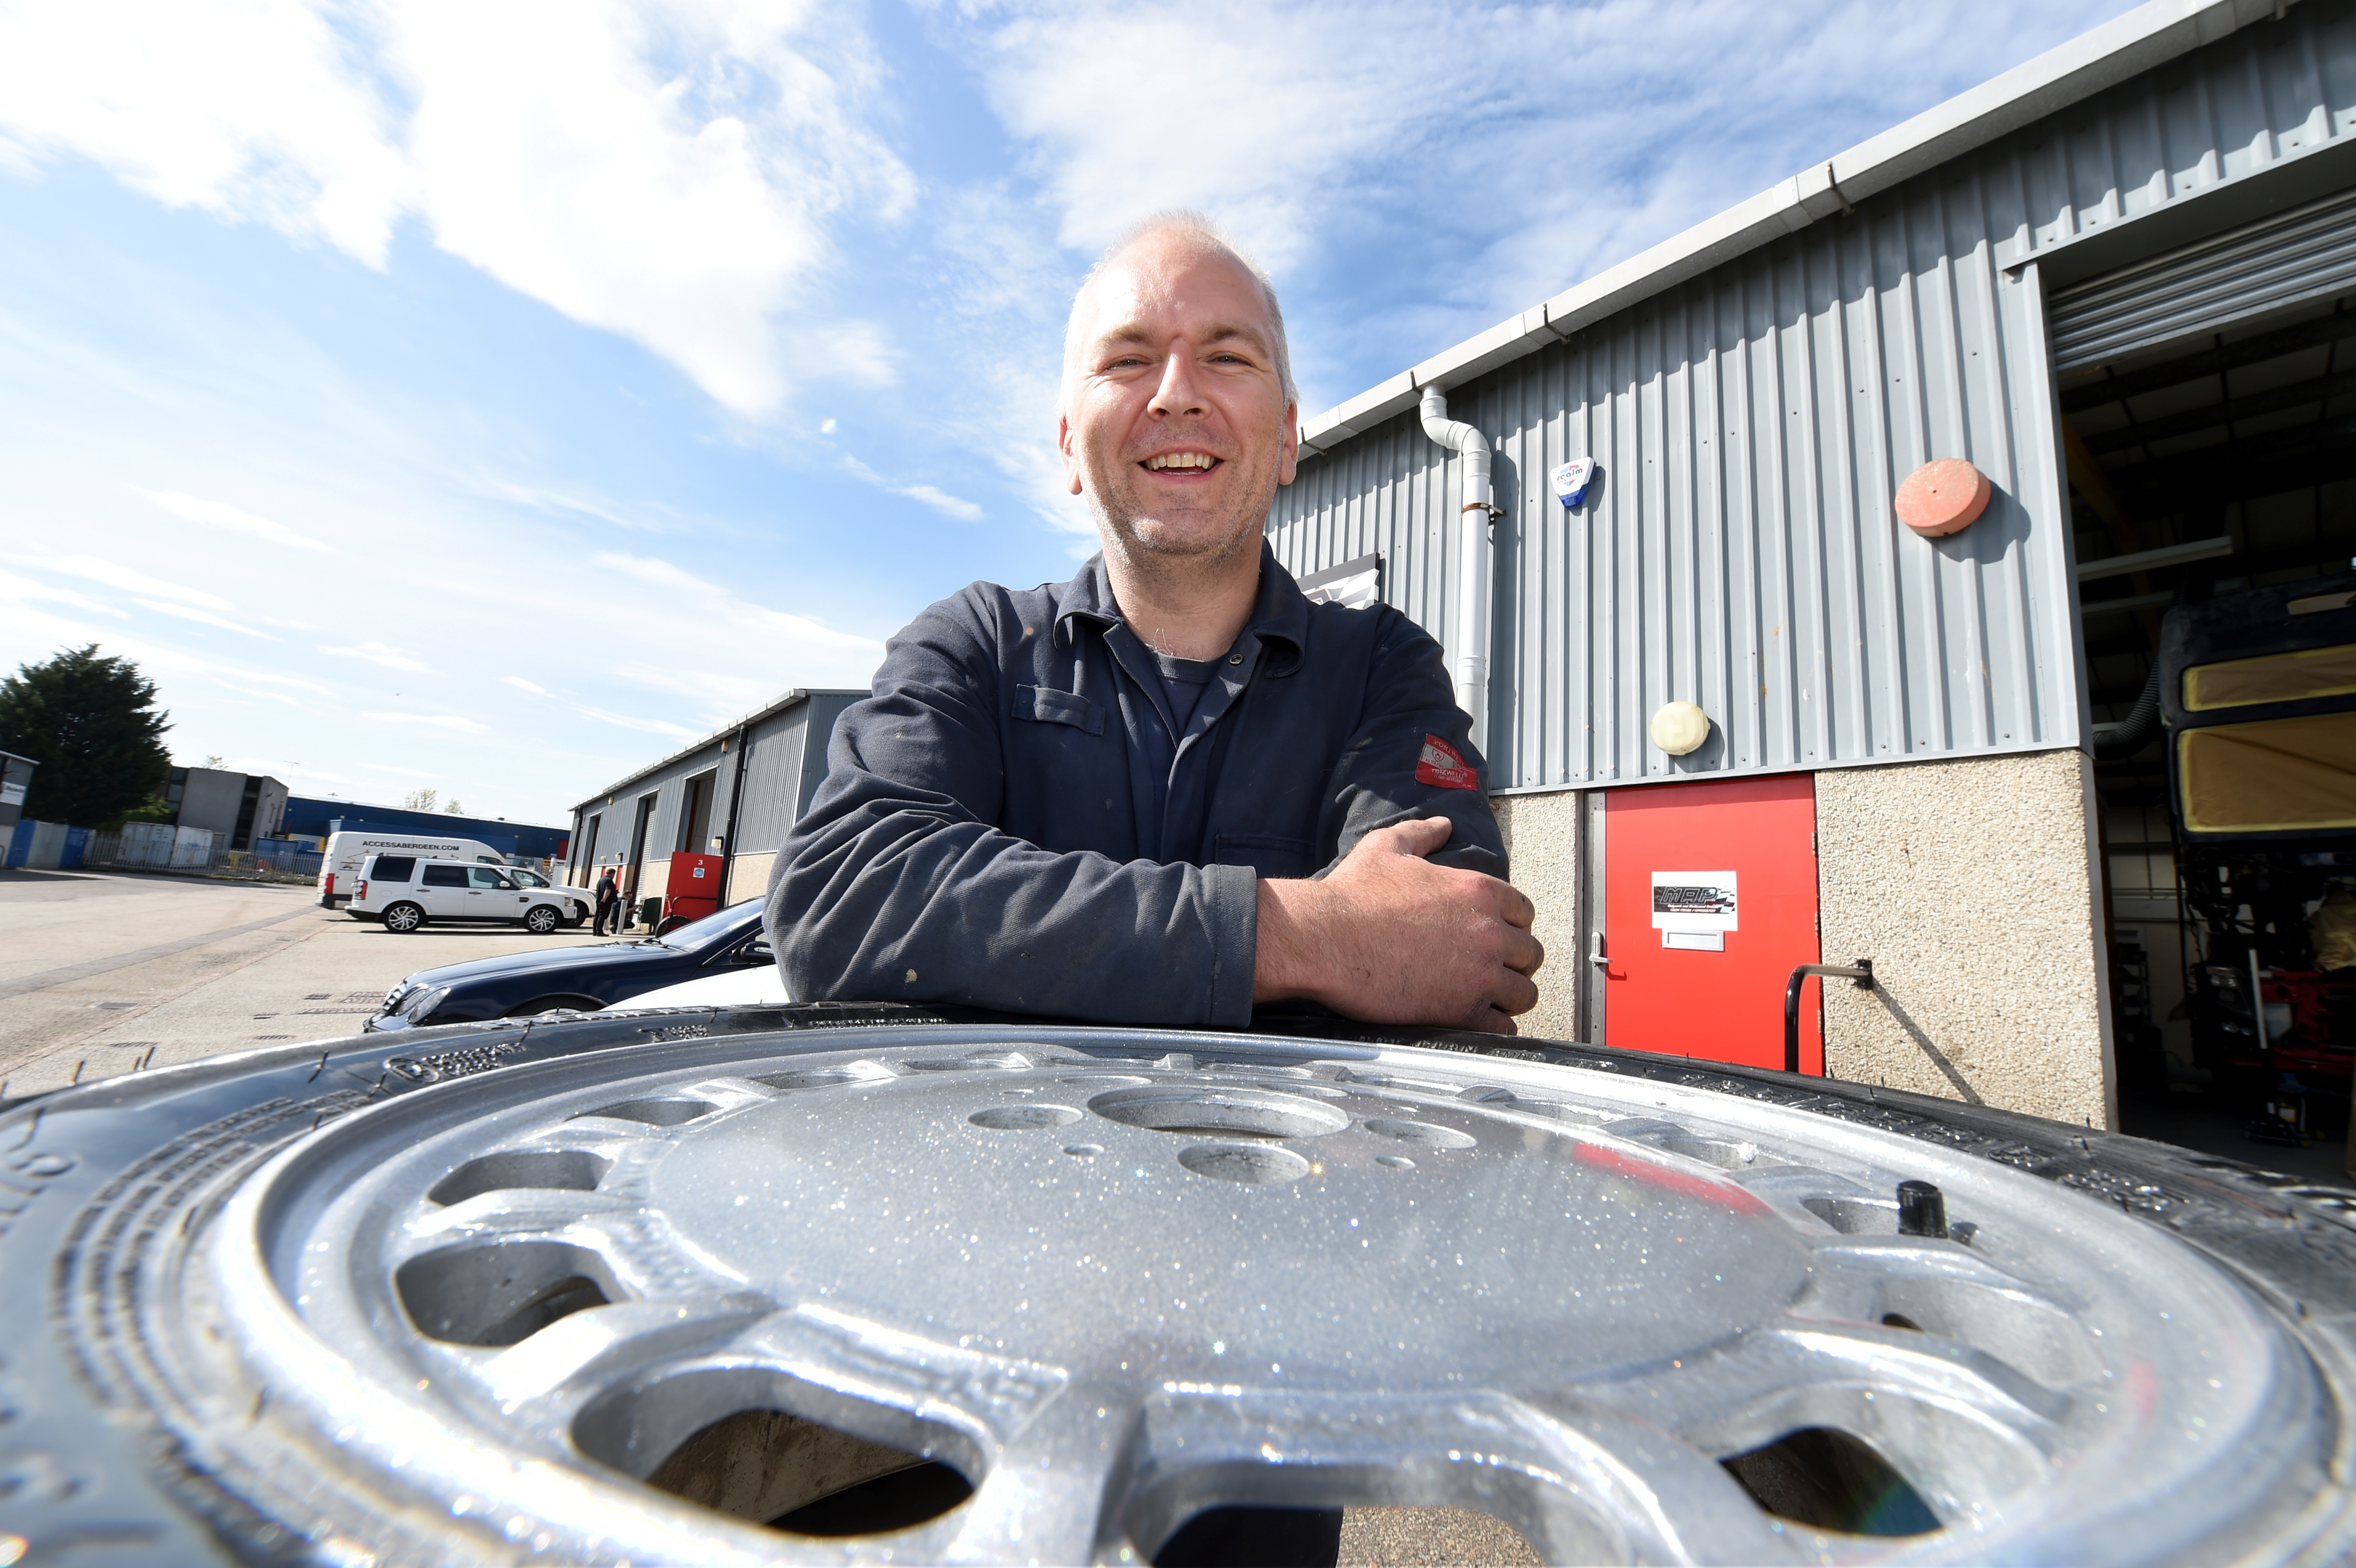 Morgan Prosser, MAP Autoshop Dyce with his paint for alloy wheels.